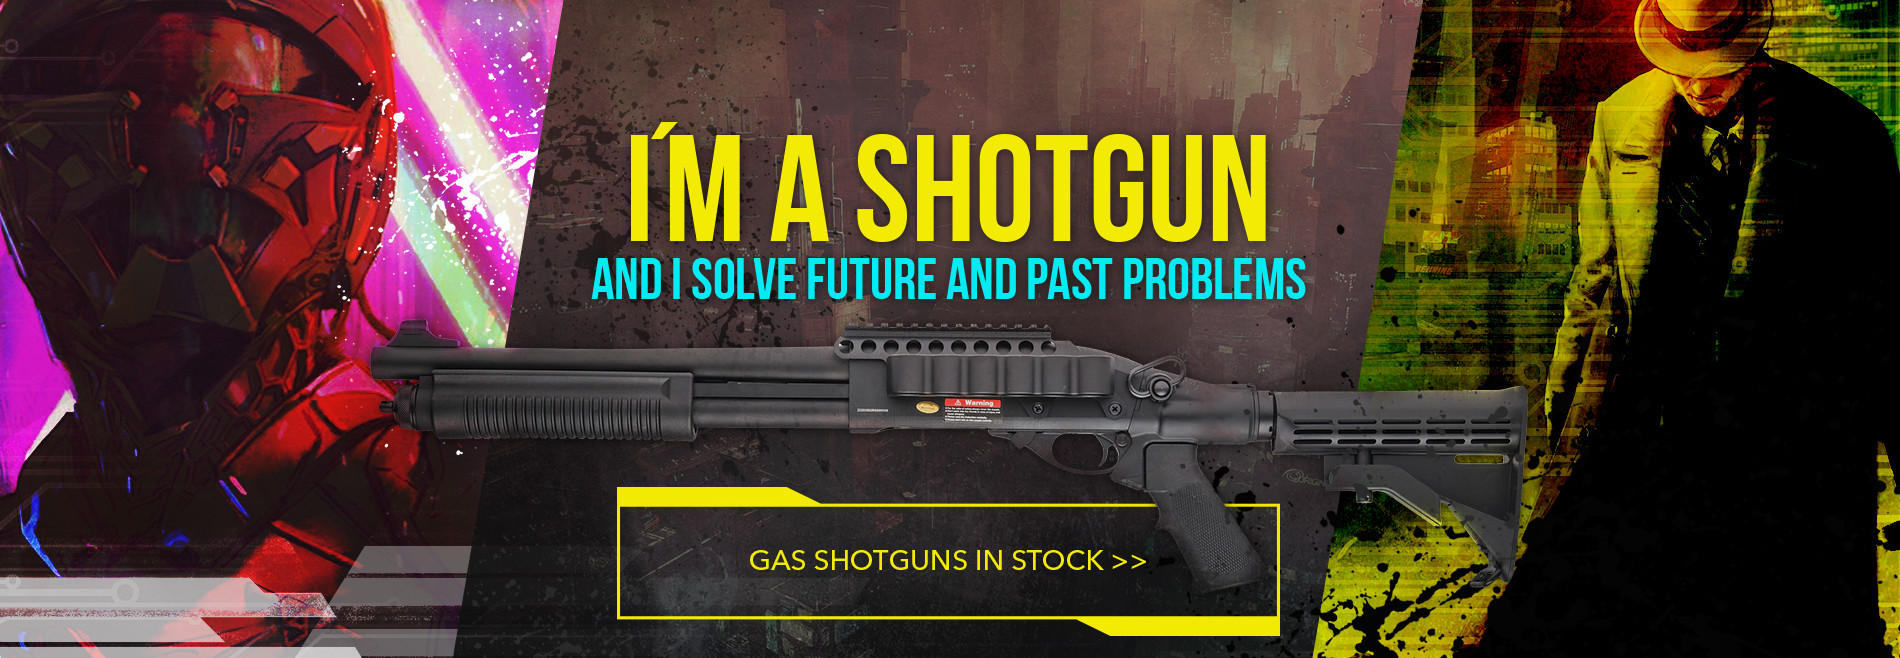 Shotgun from Golden Eagle is back in stock